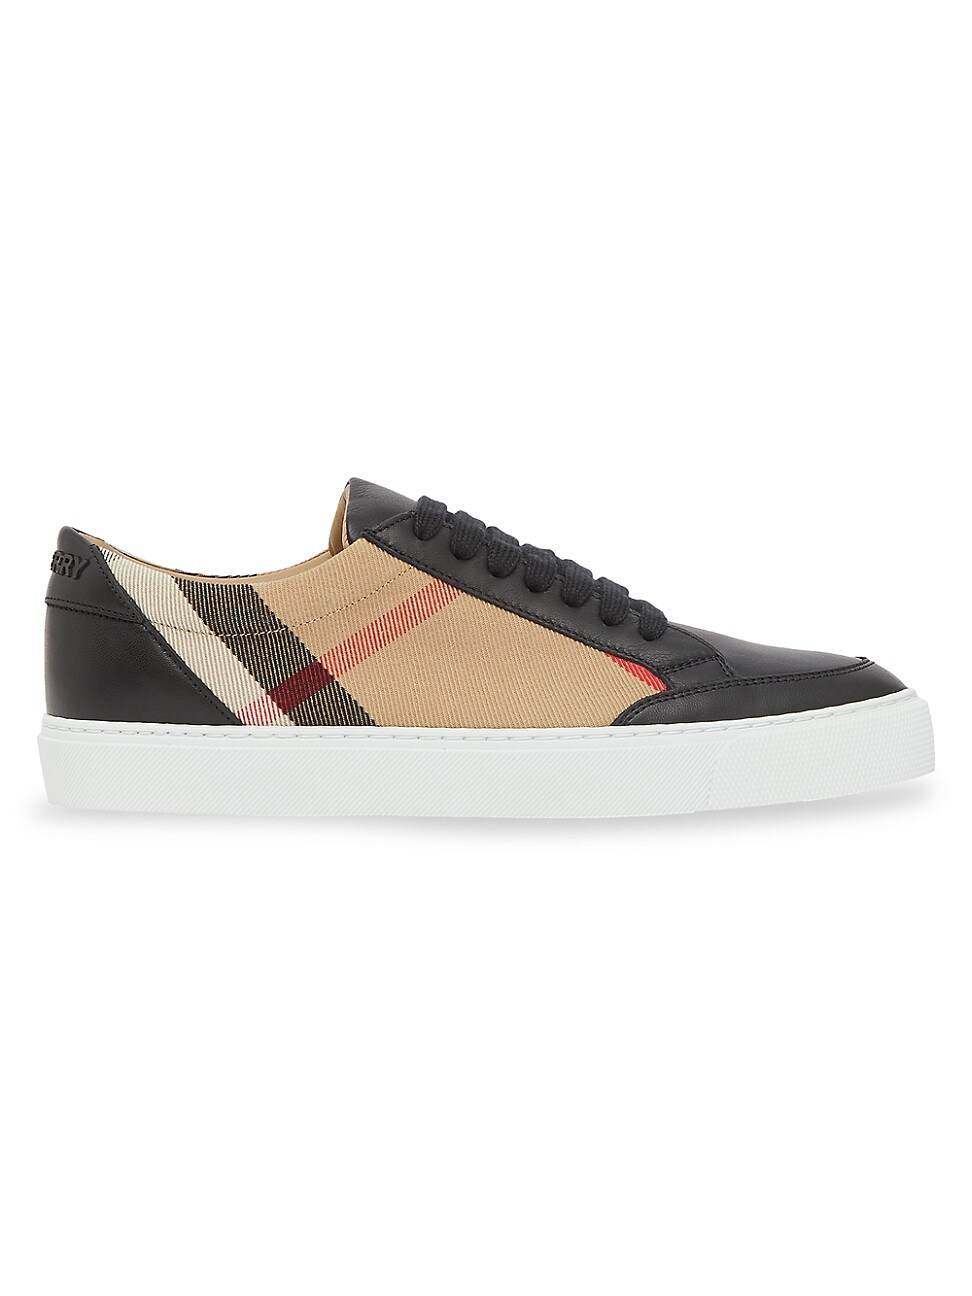 Burberry WOMEN'S NEW SALMOND VINTAGE CHECK SNEAKERS